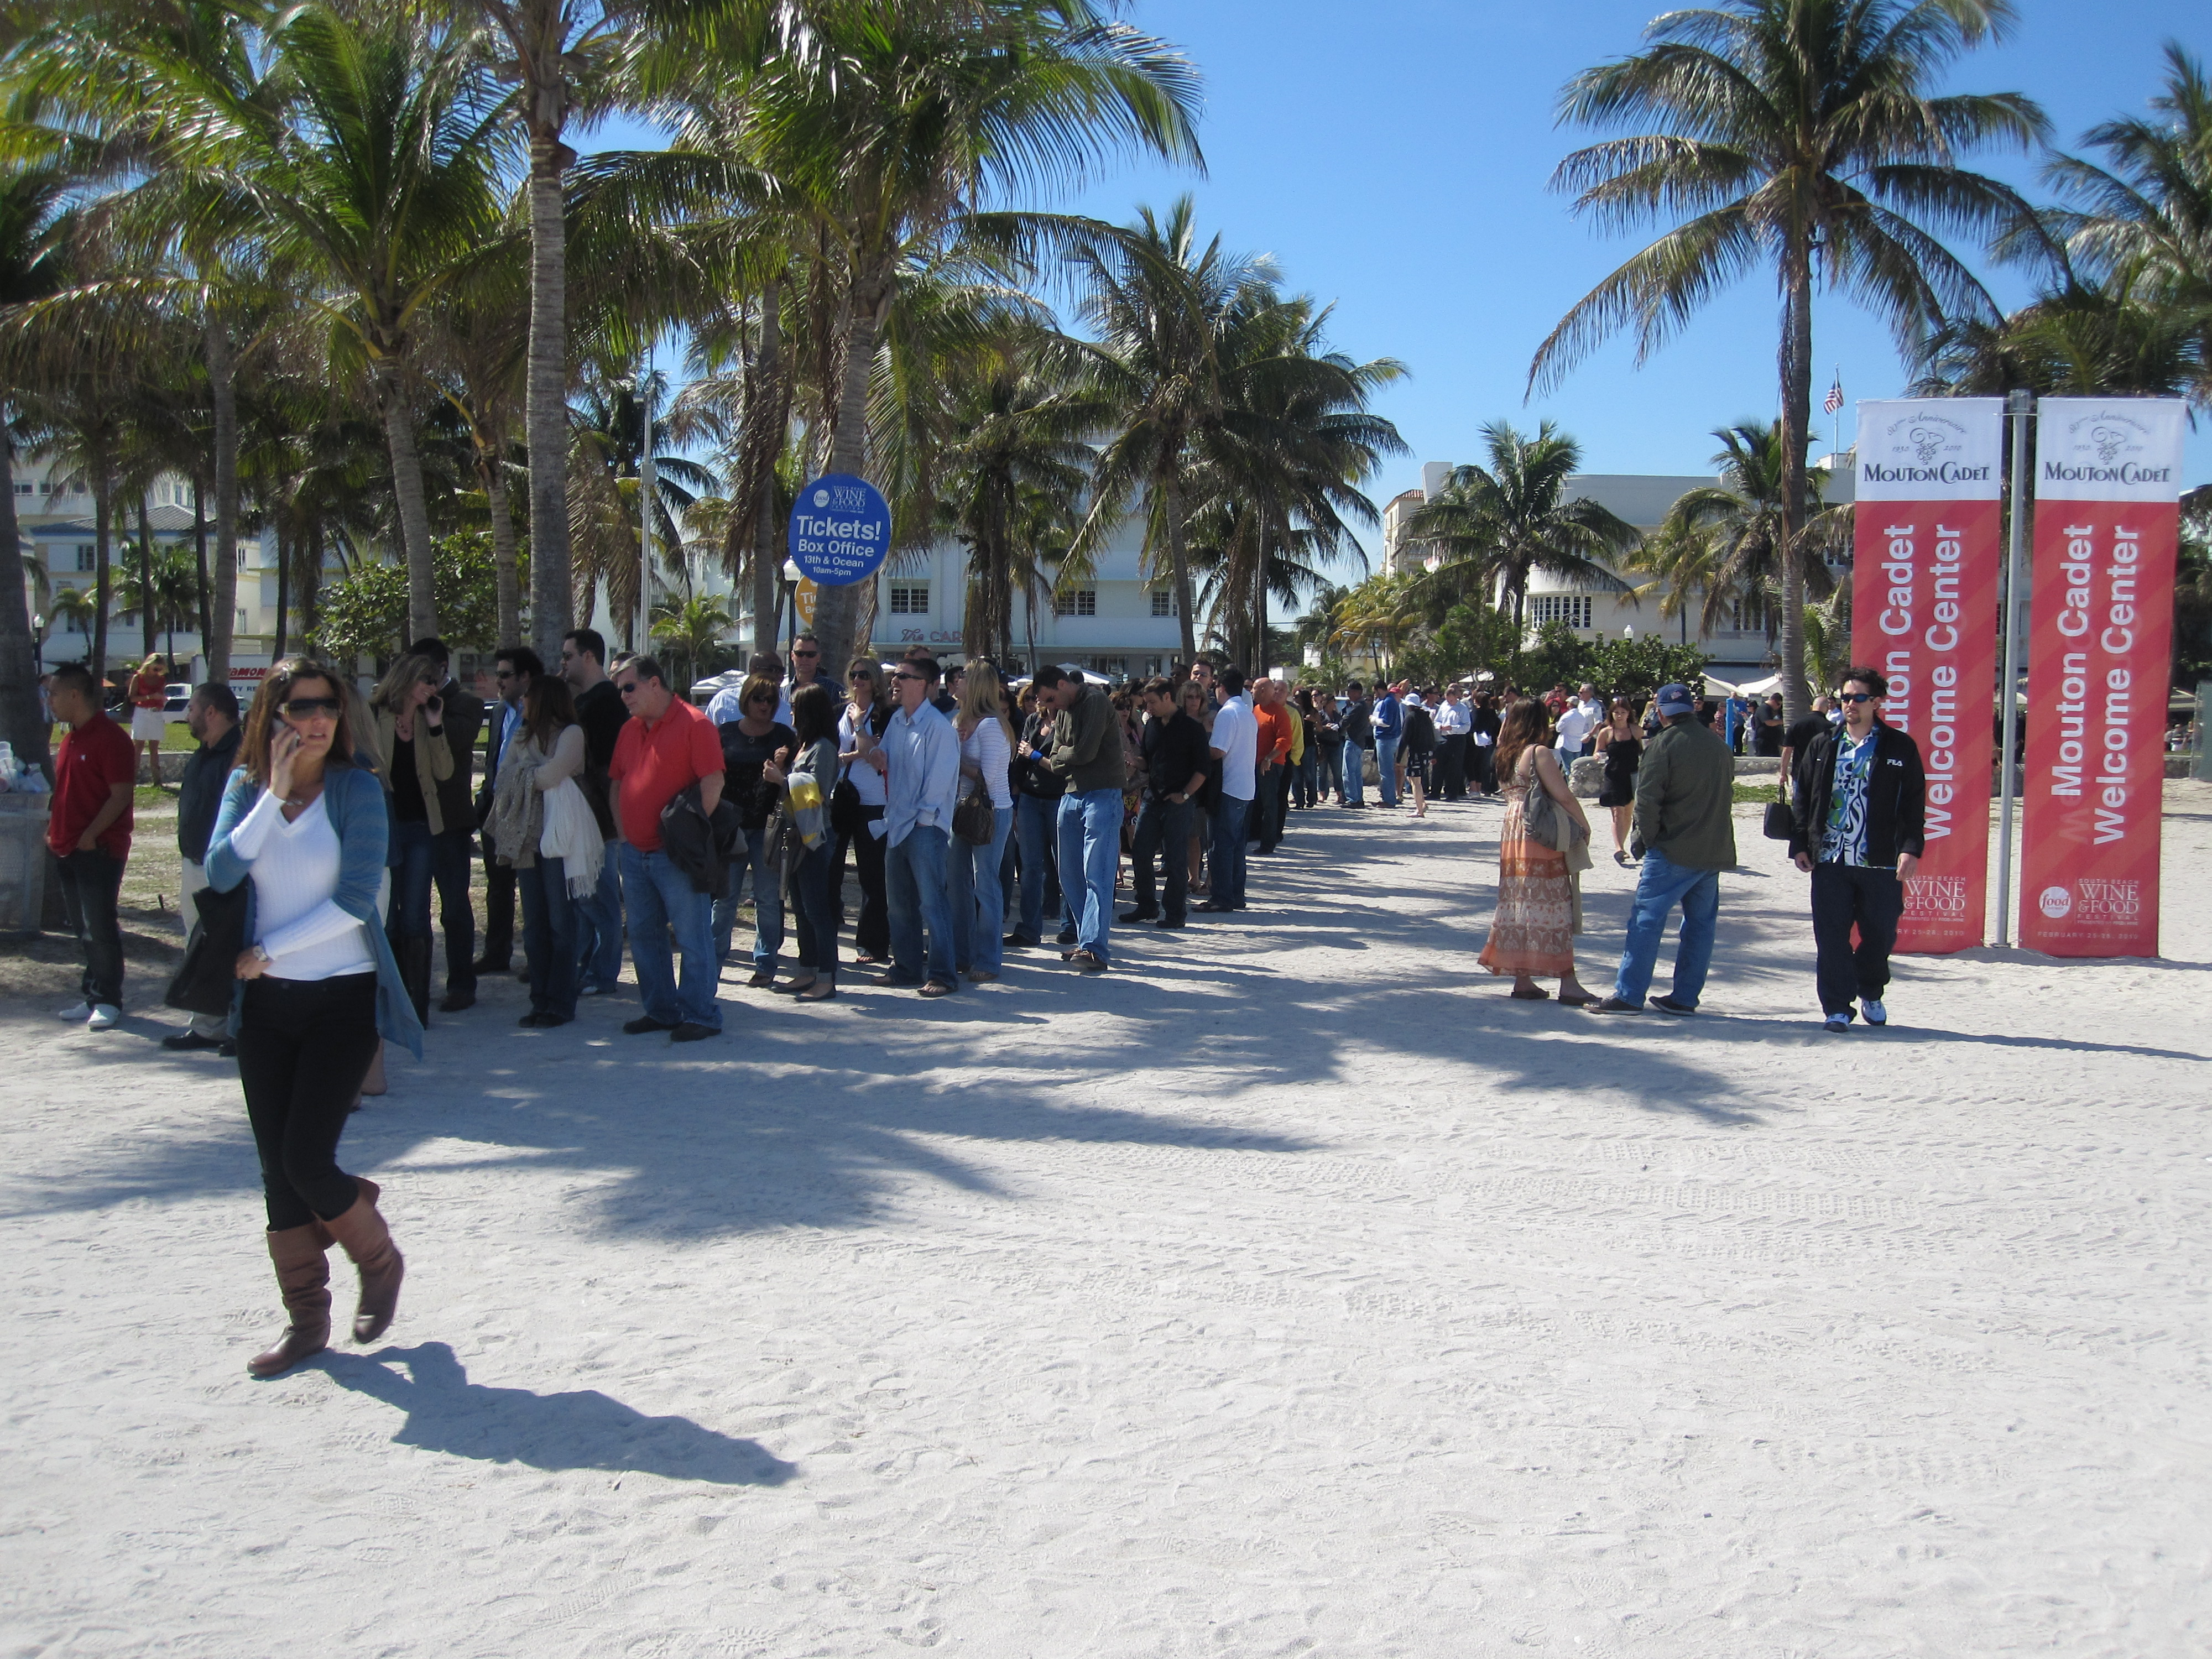 There were lines everywhere. And scalpers selling tickets. This one, to get into the festival, stretched from the beach to the street.